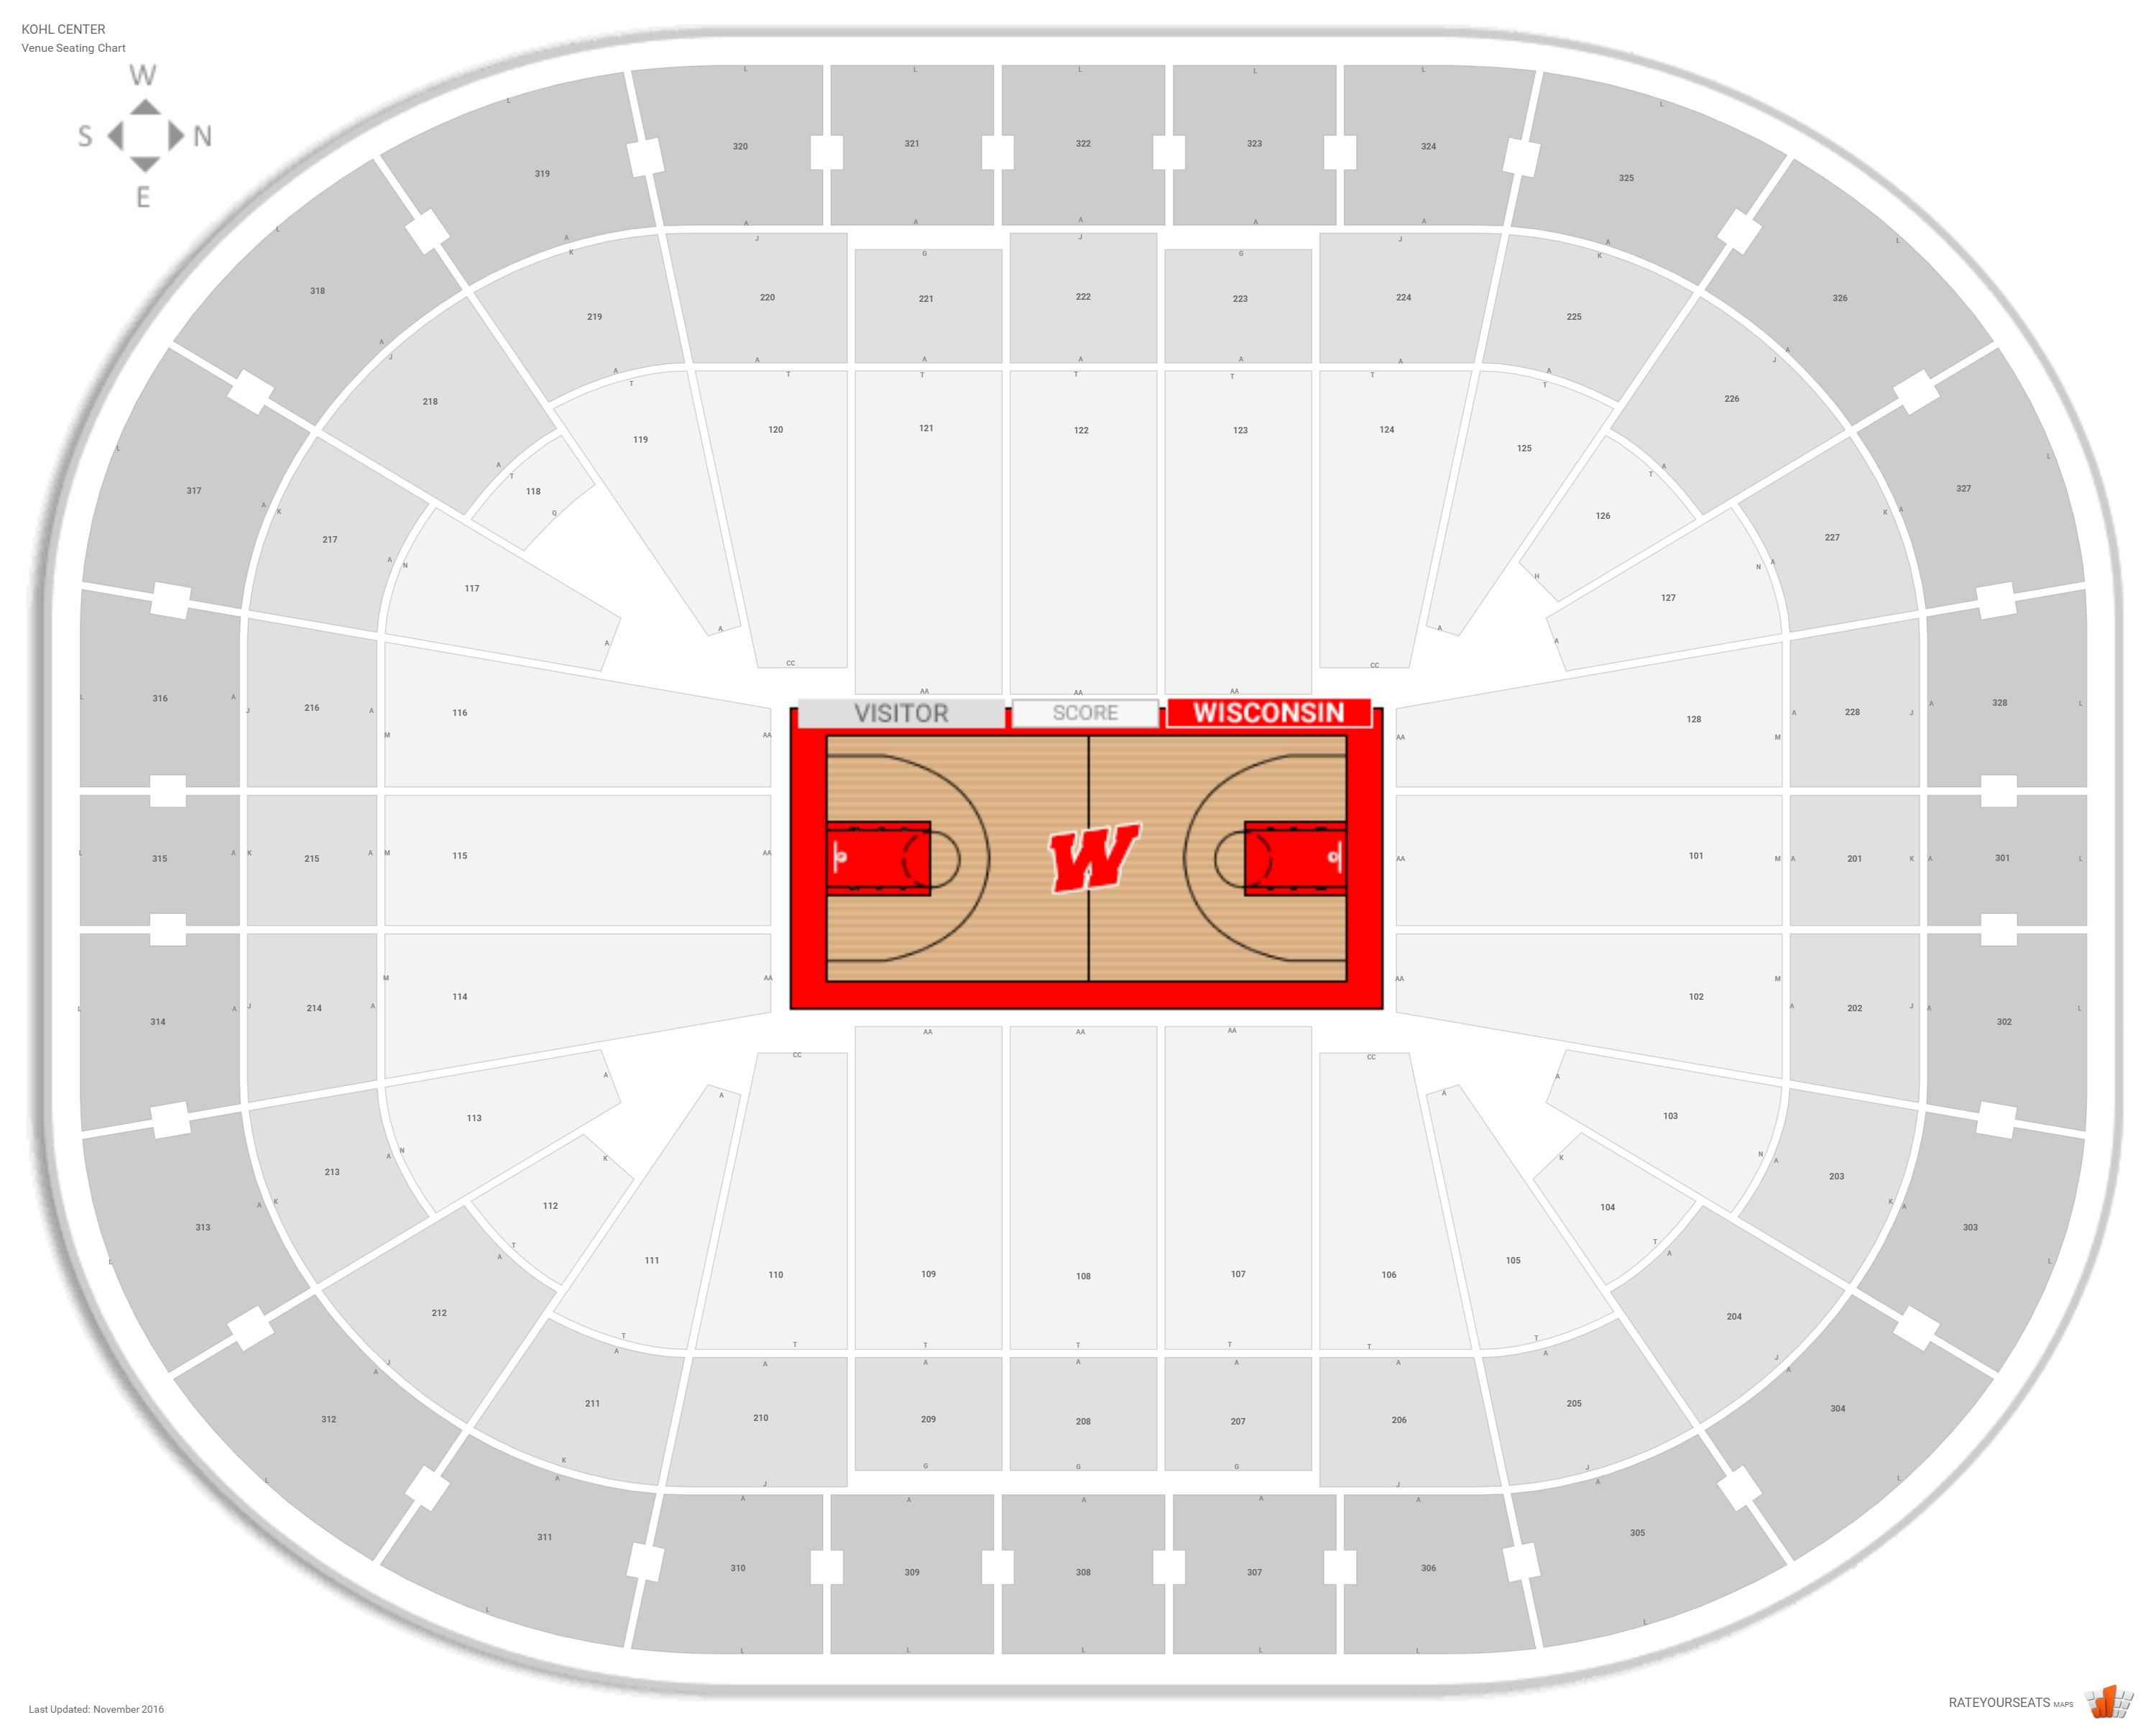 Kohl Center Seating Chart With Row Numbers